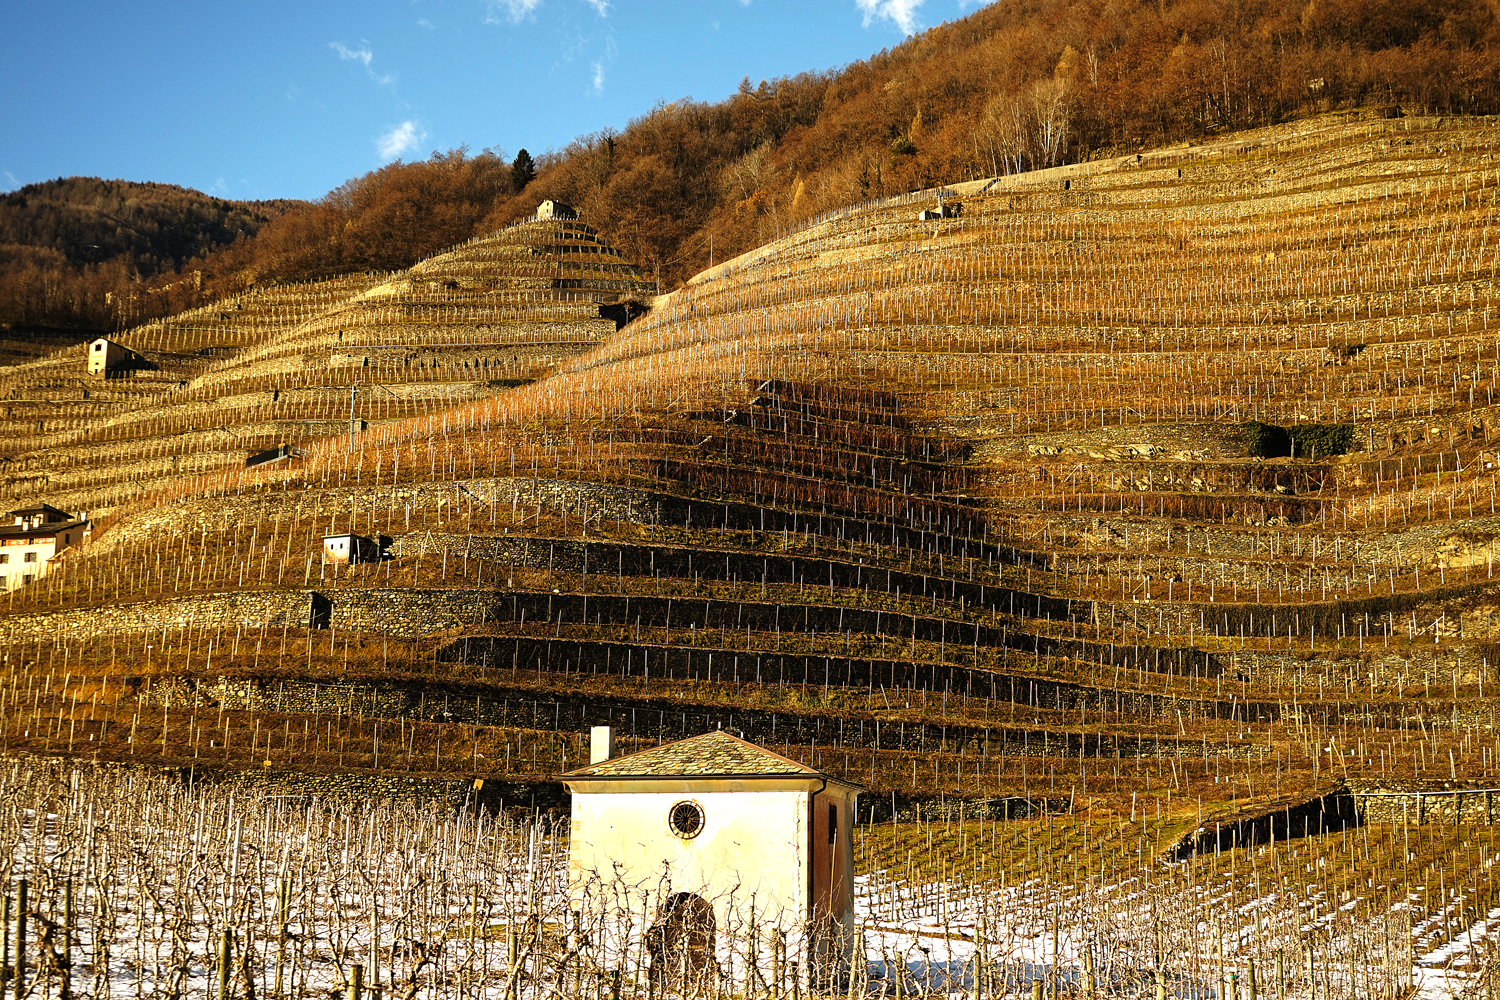 67 kilometres of panoramic road among the terraced vineyards